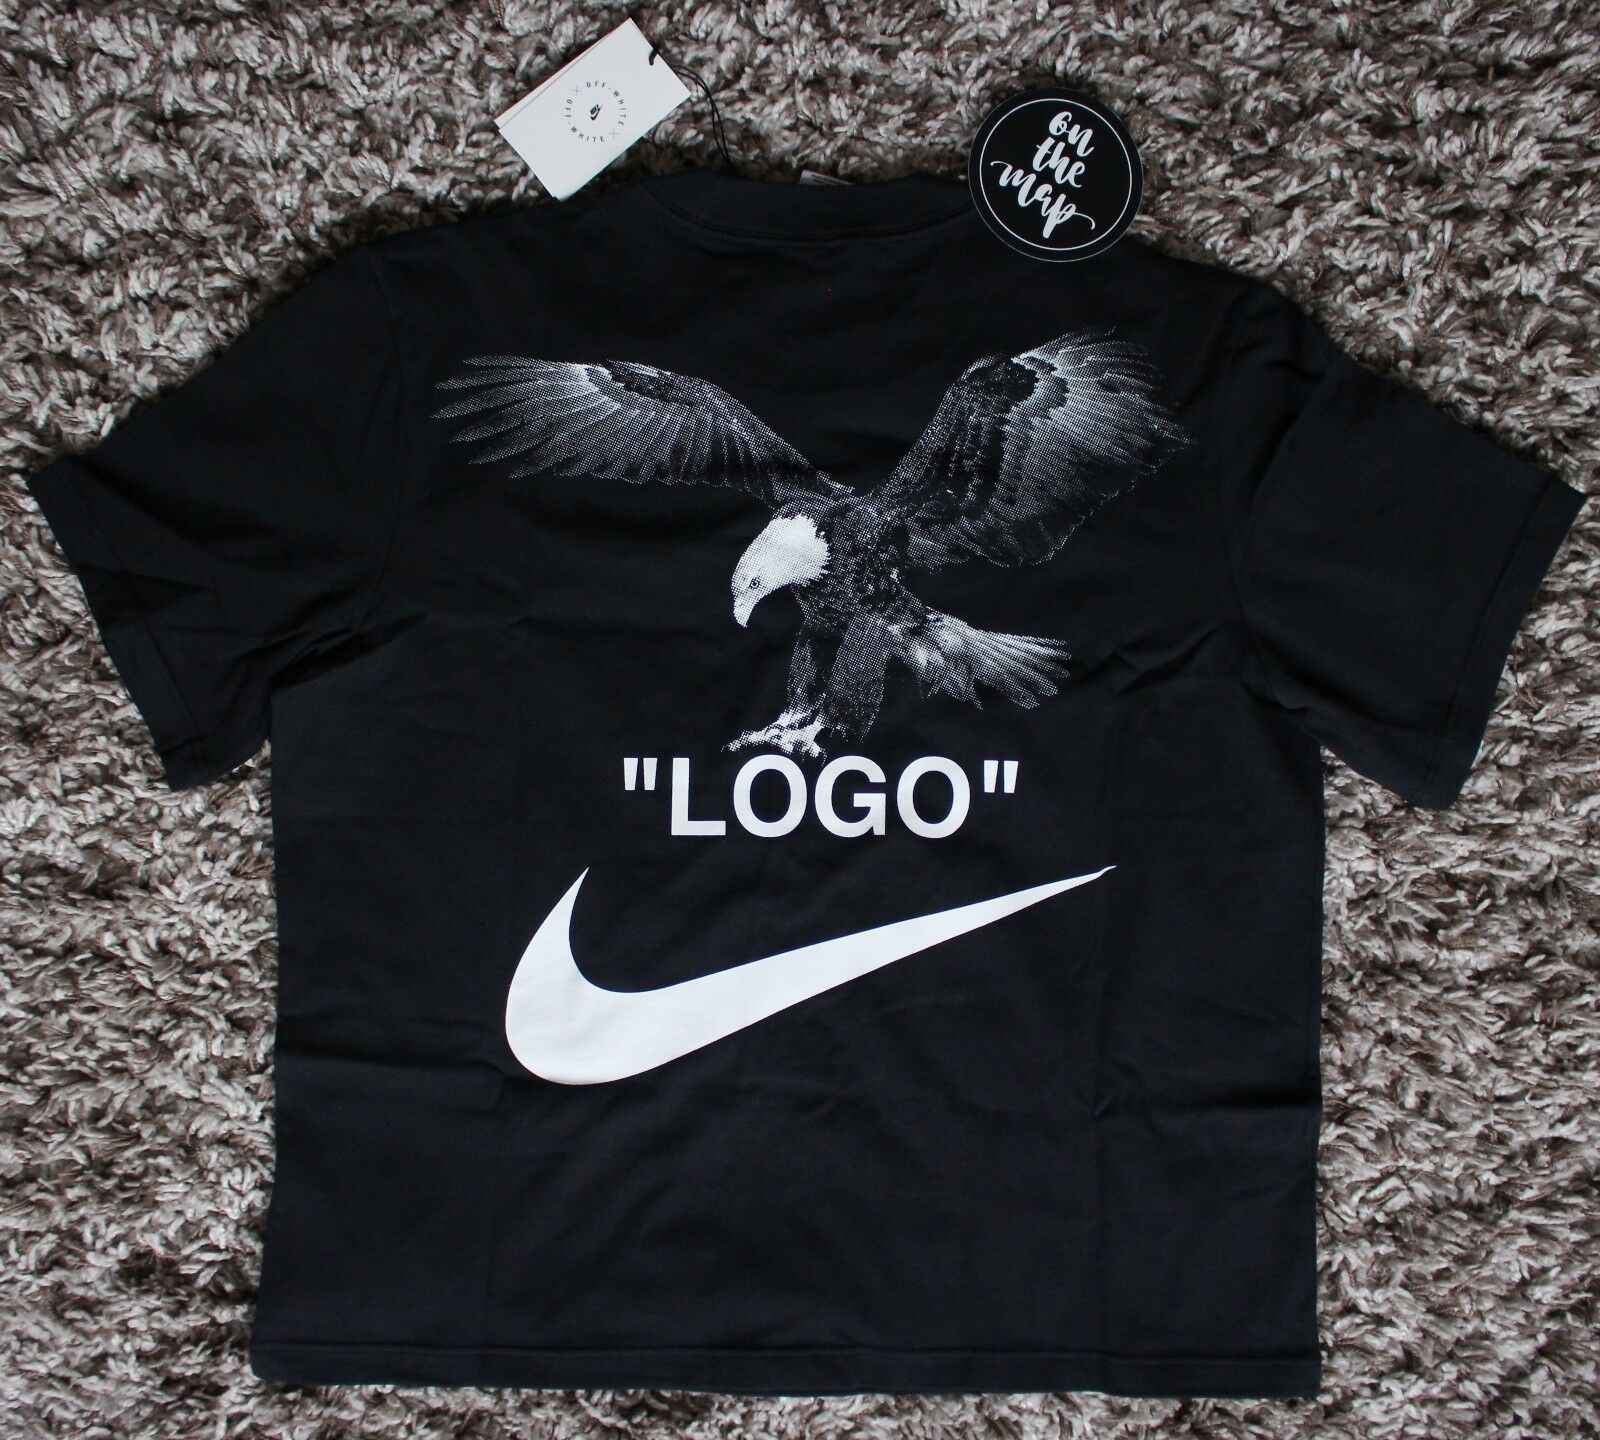 low cost a31be e1714 Nike Off White Logo Football Mon Amour T-Shirt Tee Black Small Medium S M  New